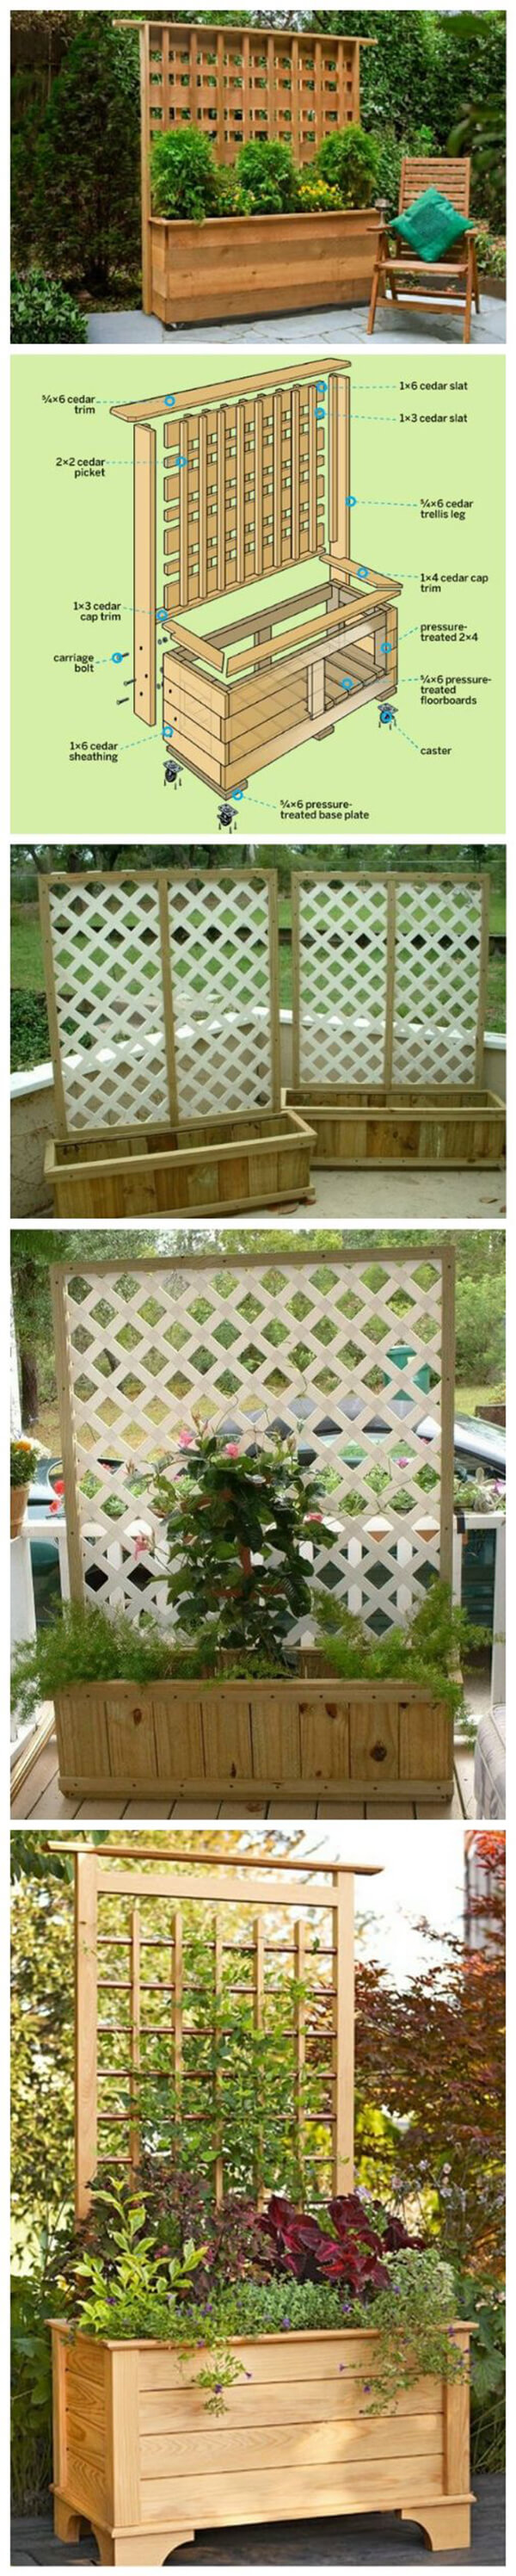 DIY Planter Box with Climbing Trellis